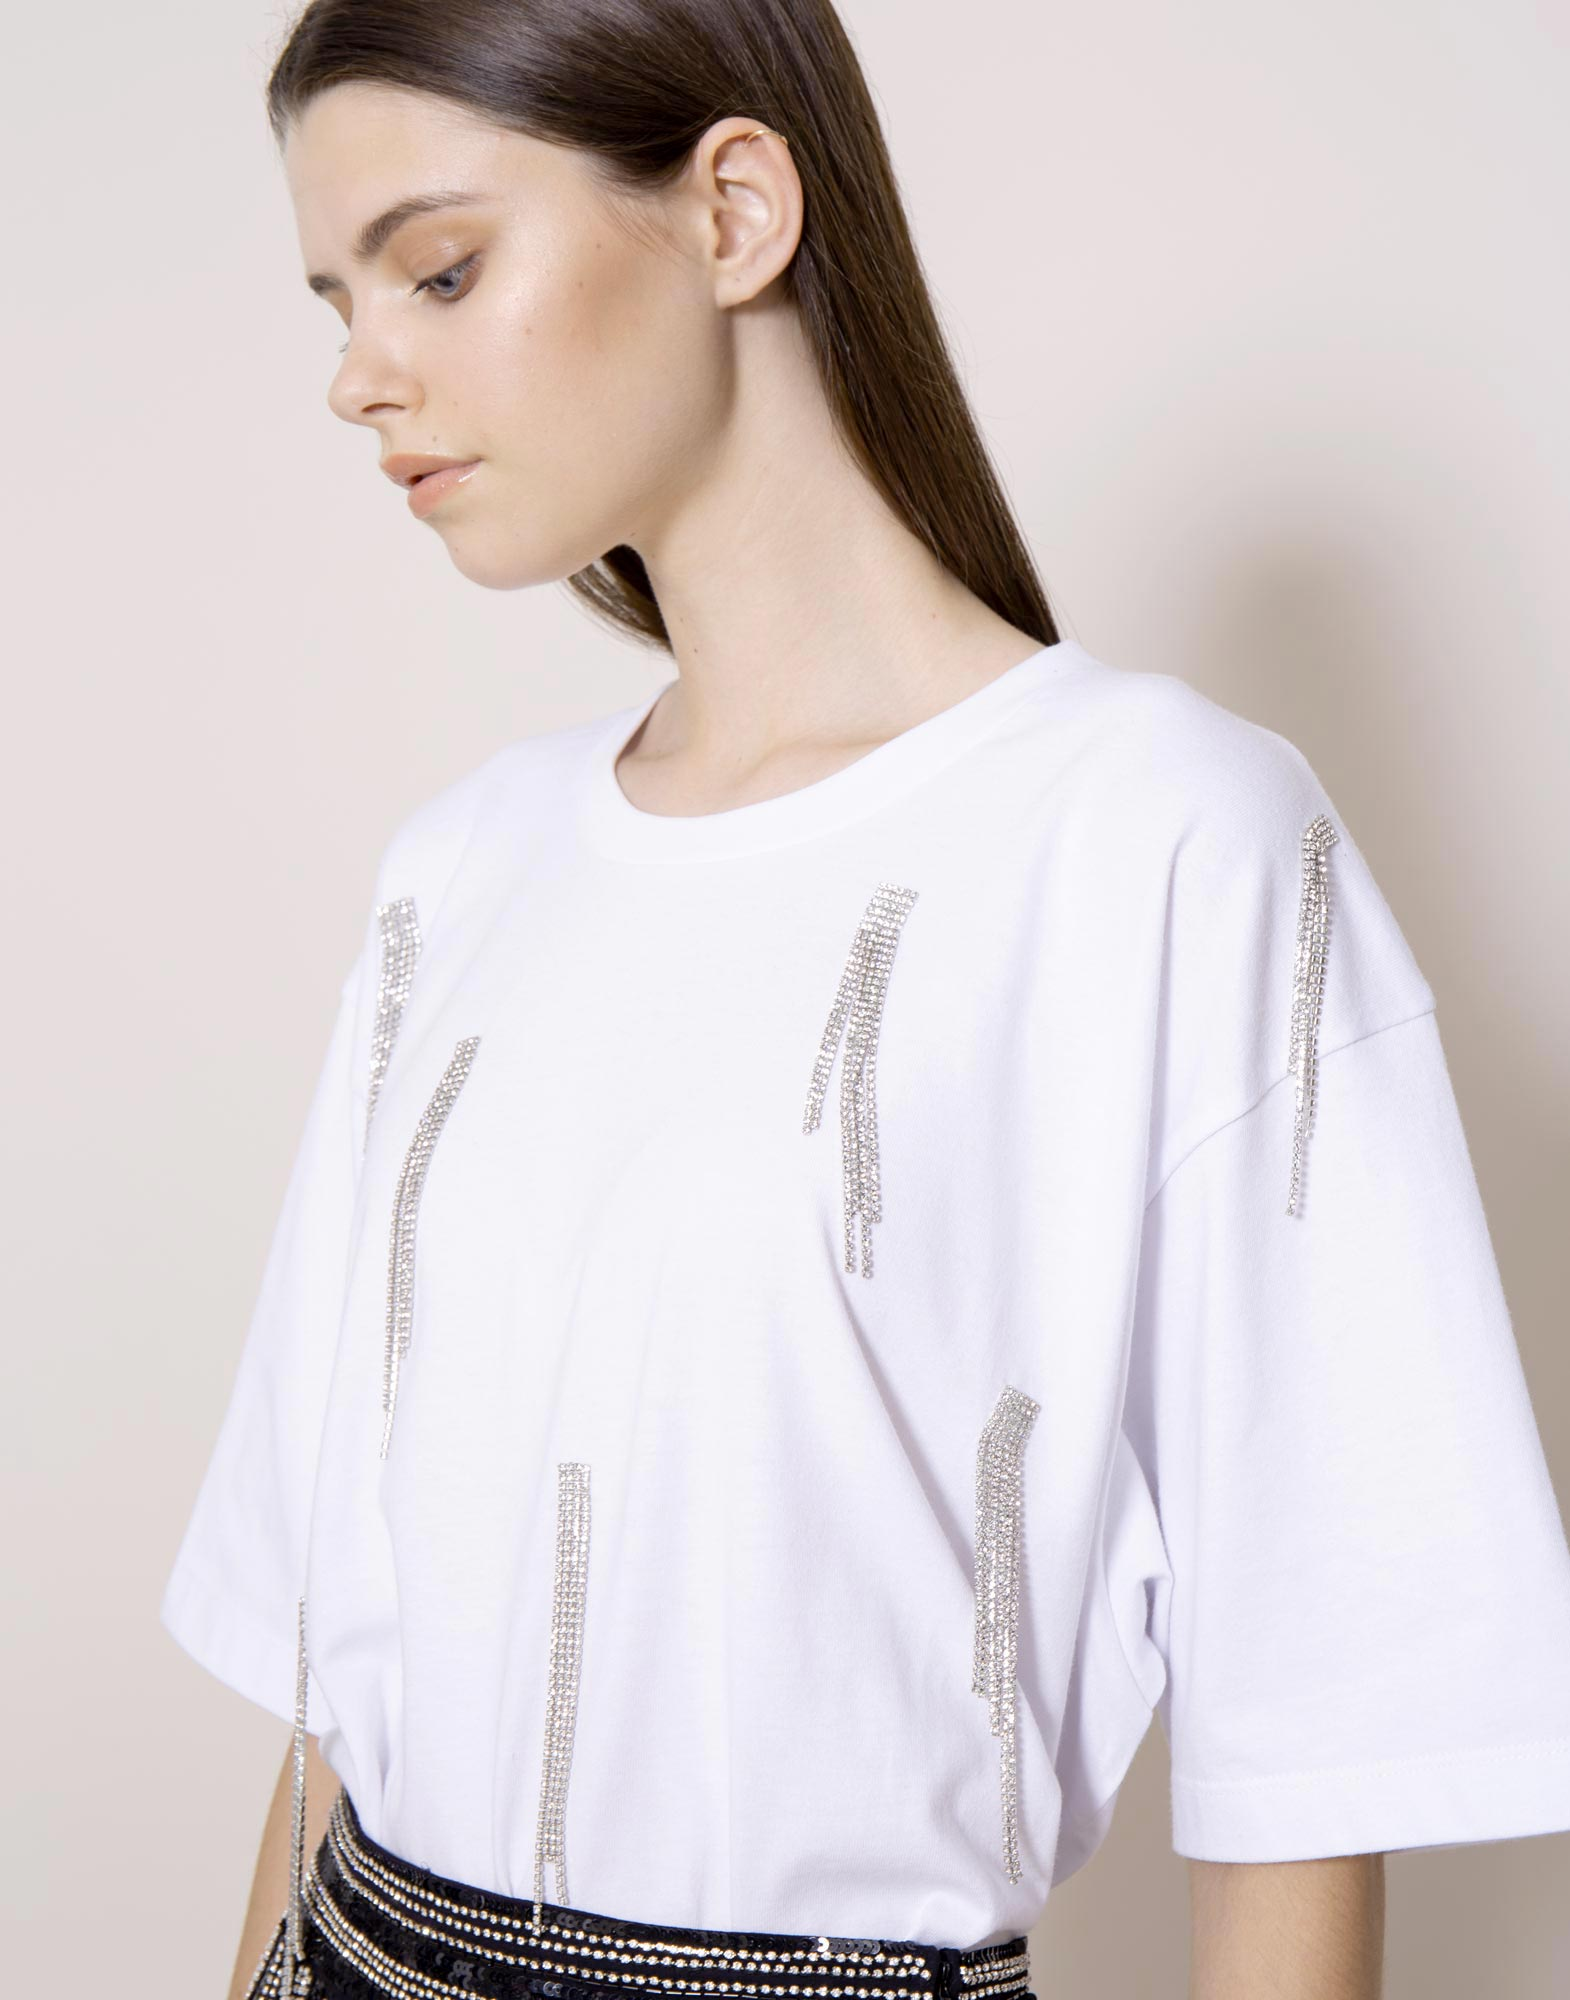 Oversized t-shirt with rhinestone fringes